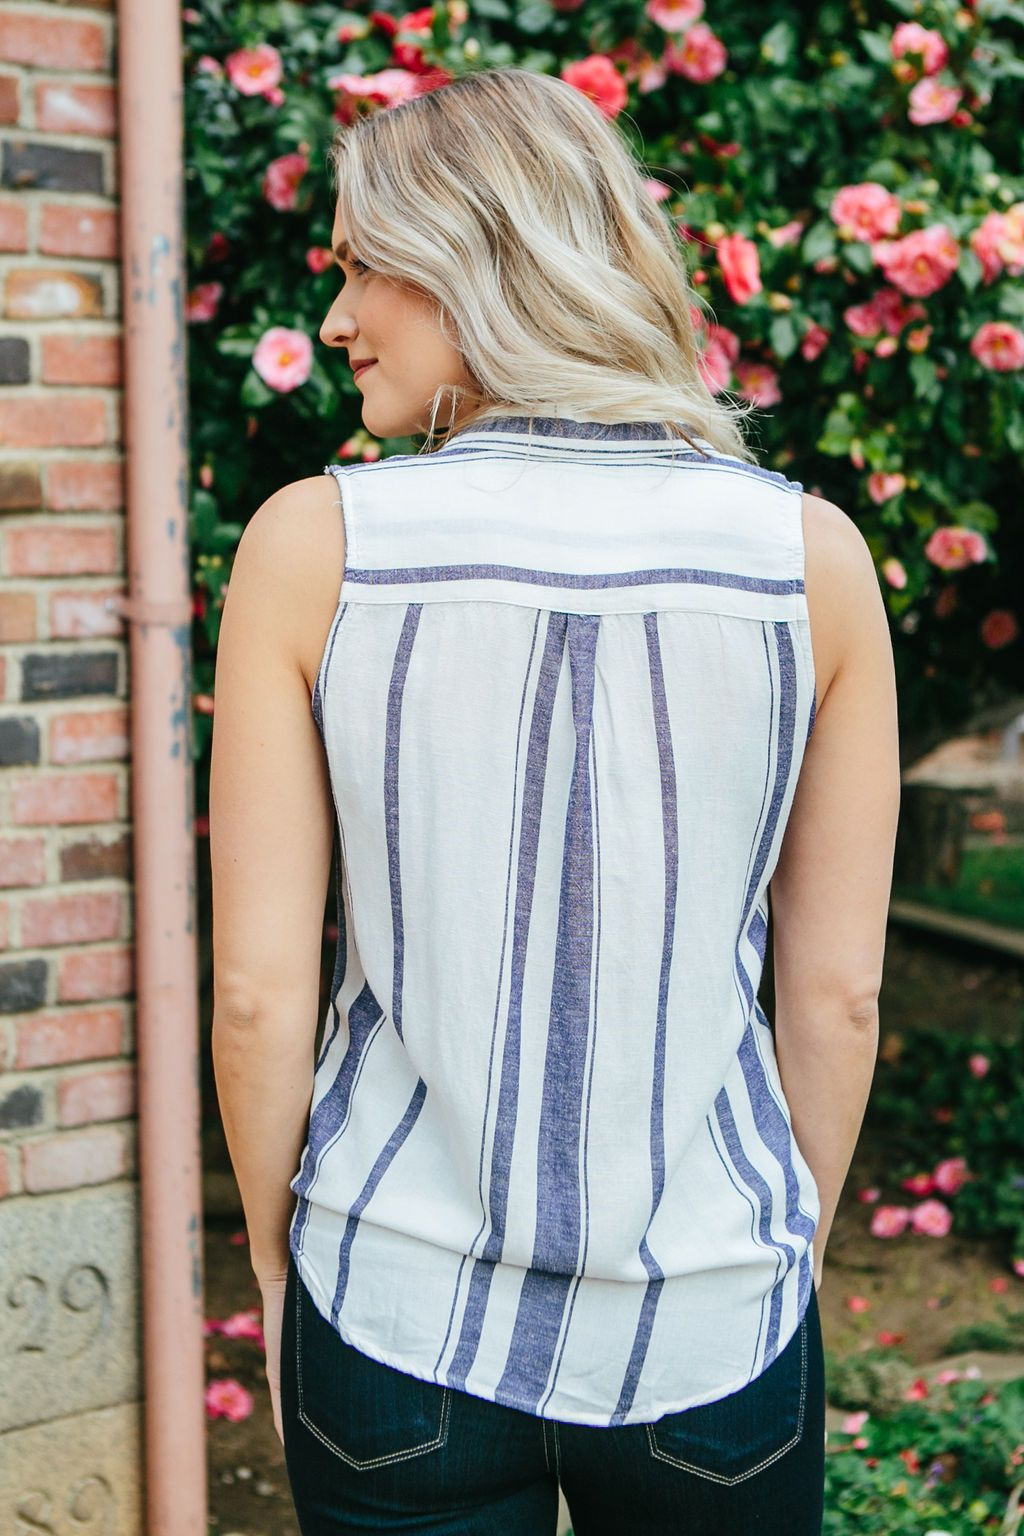 Women's White and Blue Striped Tank Top Collared